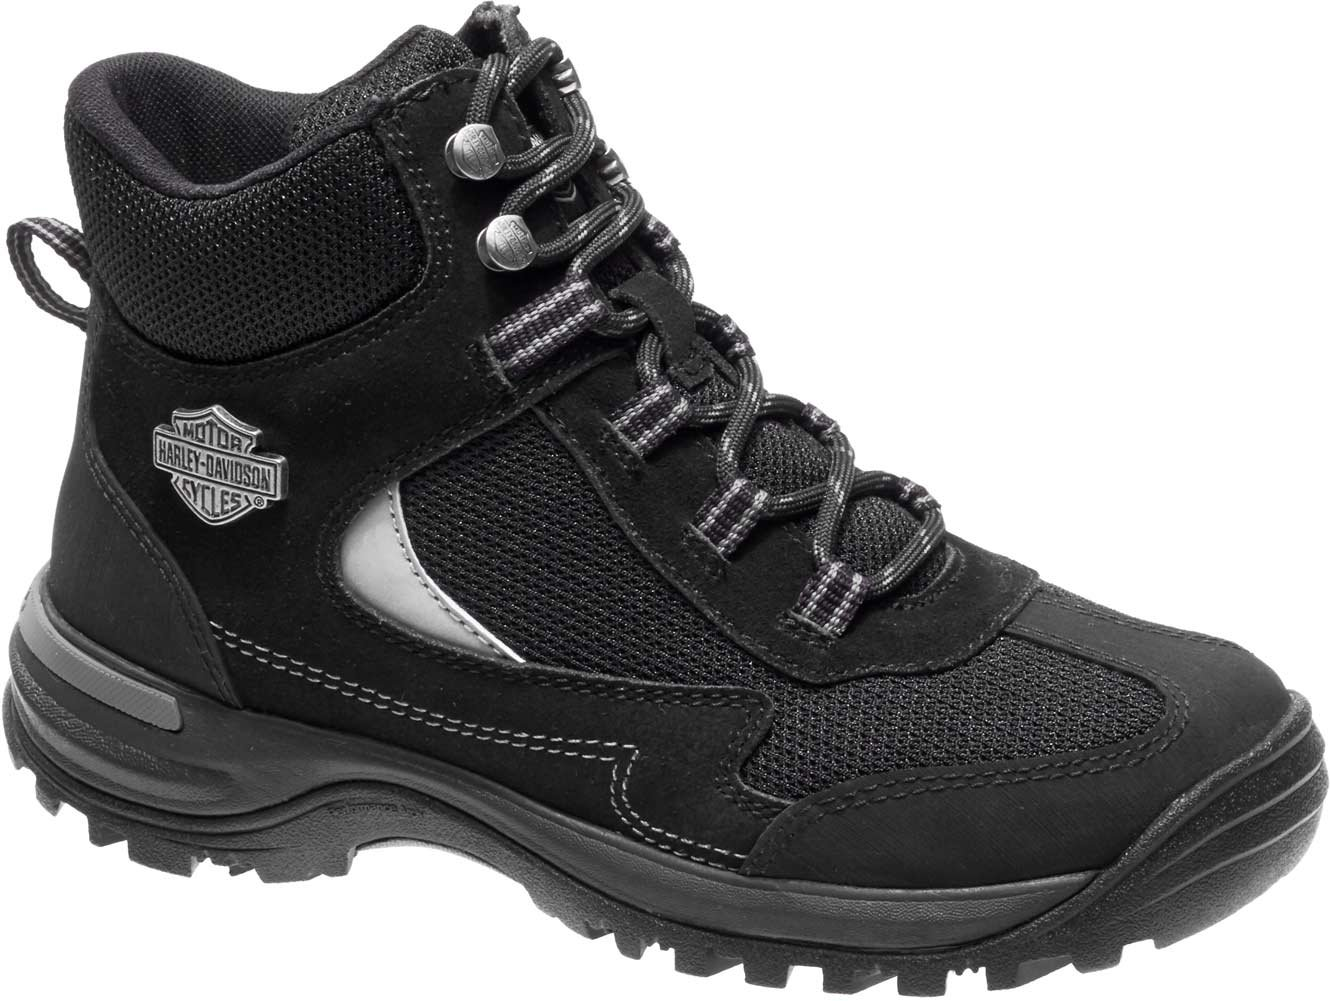 Harley-Davidson Women's Waites CT Industrial Shoe, Black, 8 Medium US